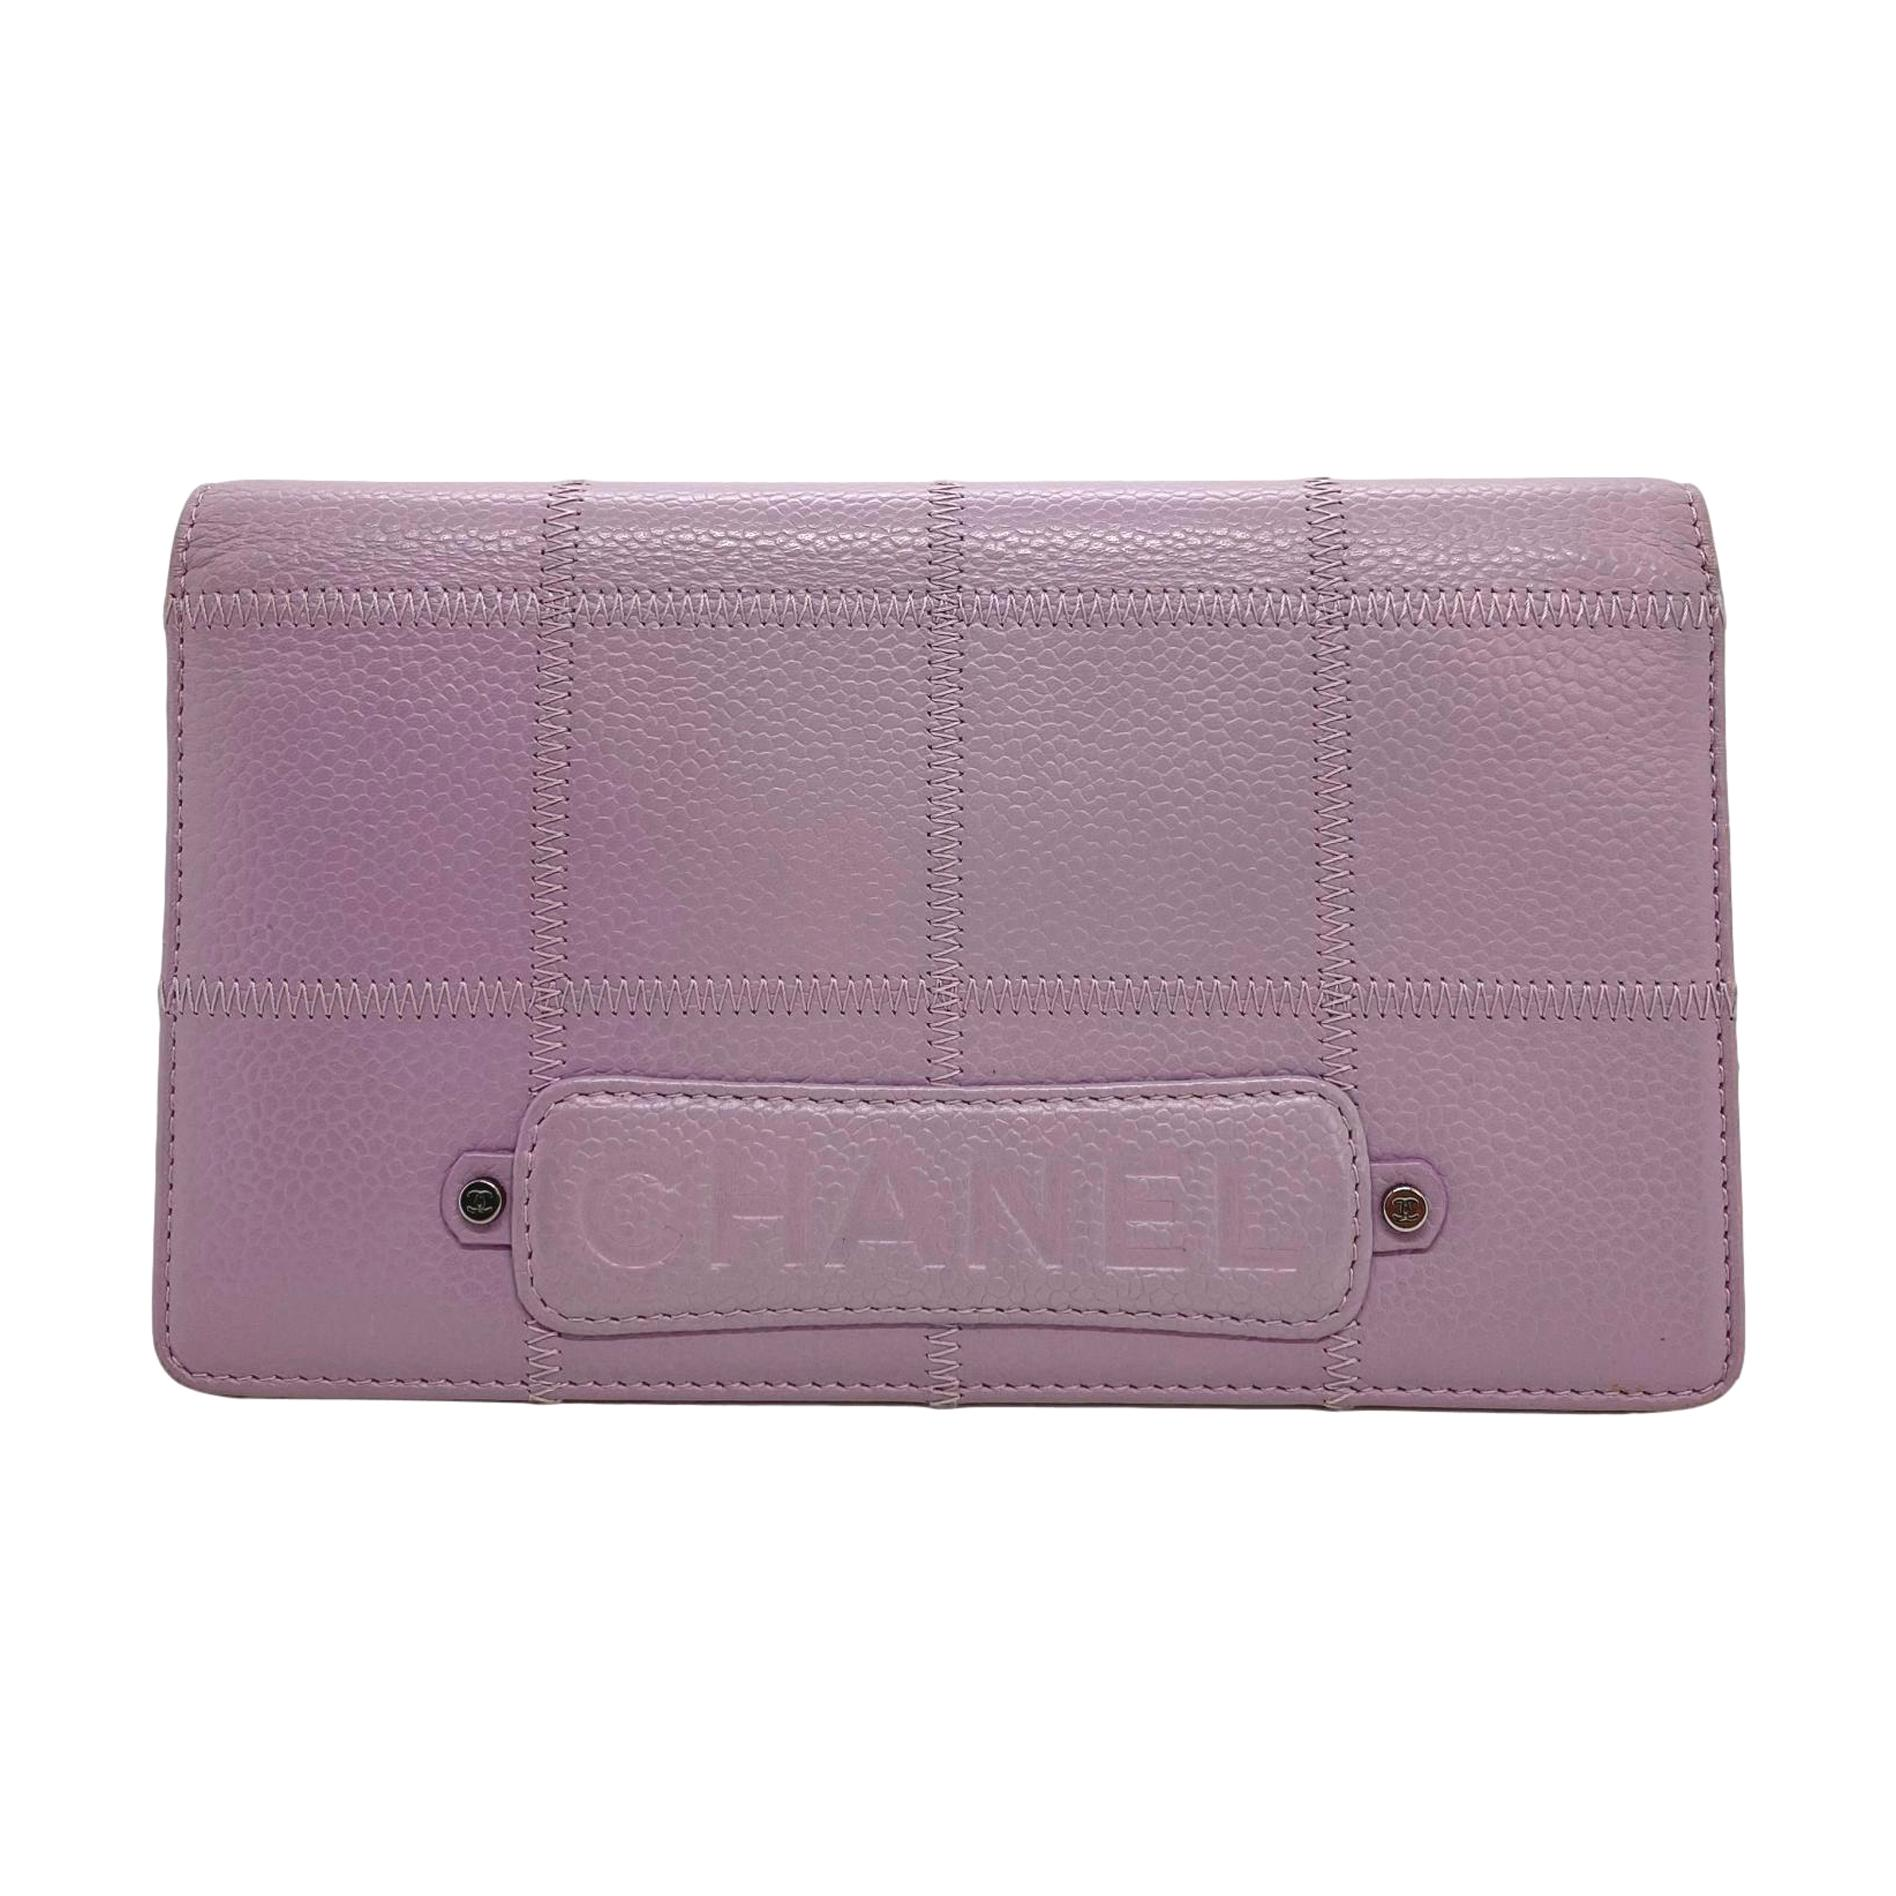 Chanel Quilted Caviar Leather Long Bi-Fold Lavender Wallet